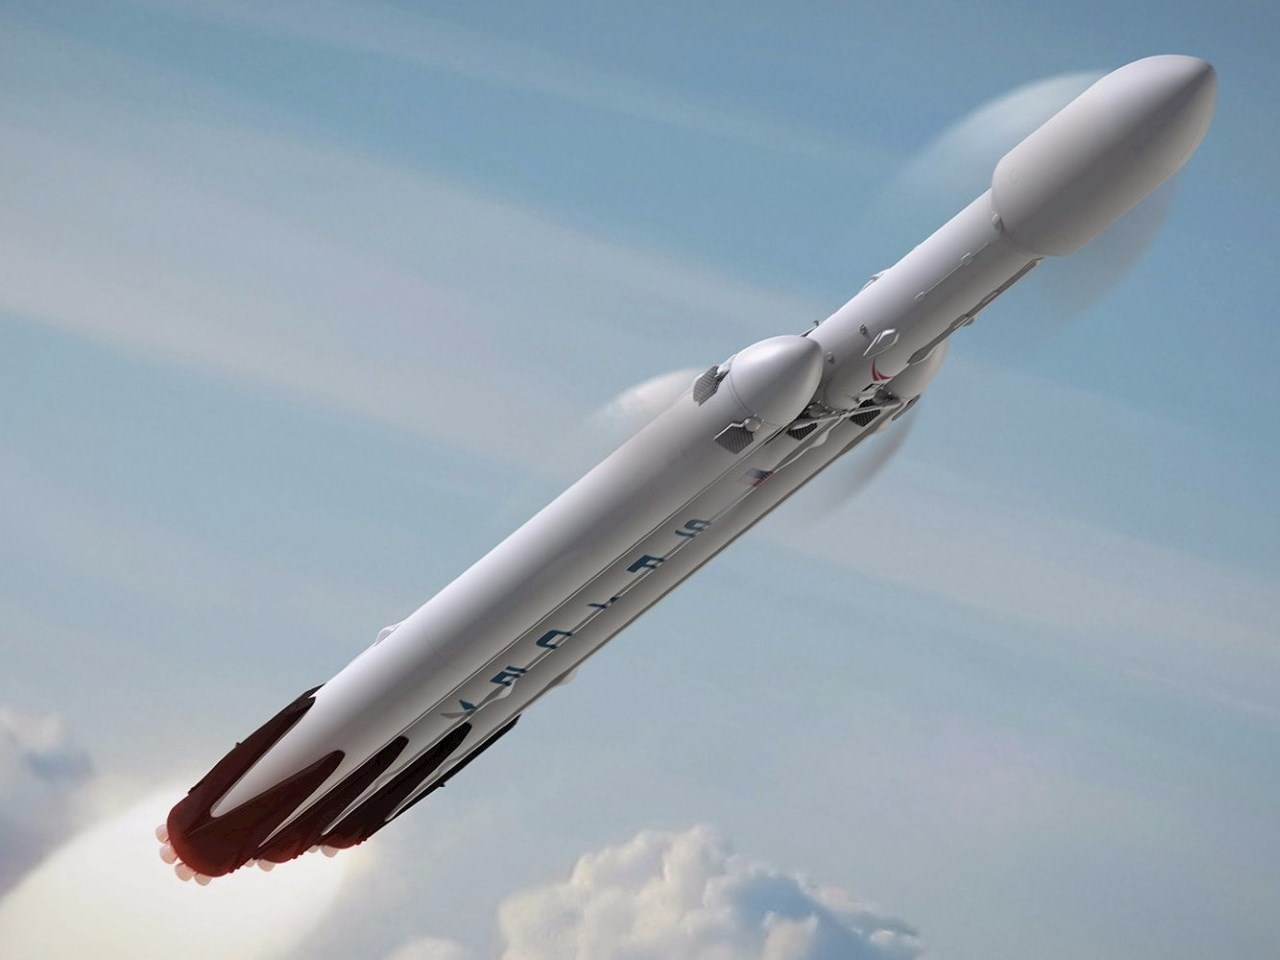 An illustration of the Falcon Heavy rocket